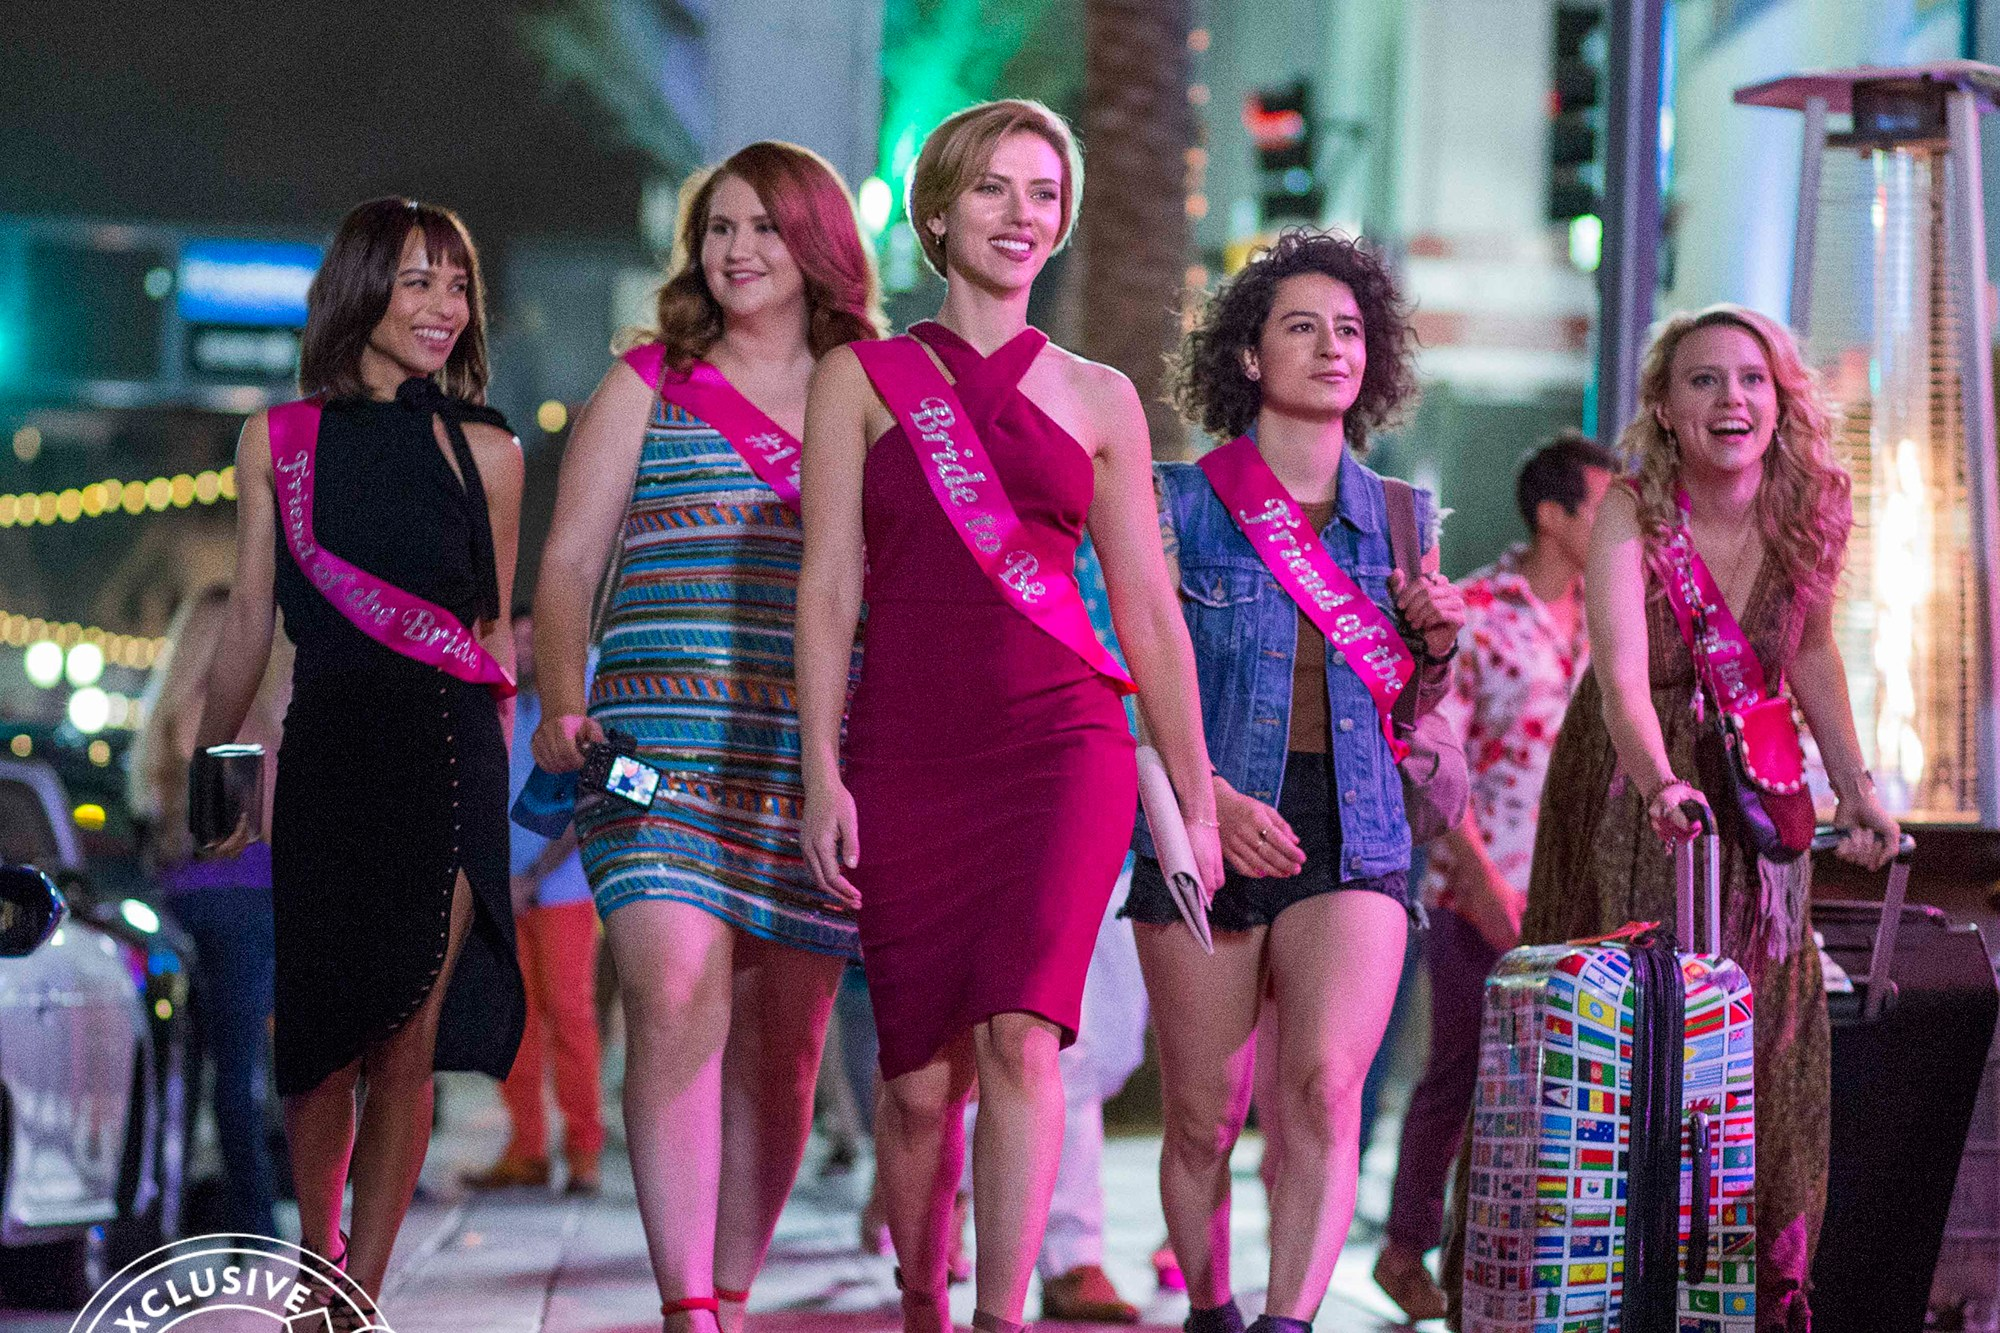 Rough Night - It's the first official crossover episode! Amanda has Katie and Wesleigh from the Viewing Party Podcast on to discuss the comedy, Rough Night. Katie has a famous laugh, Wesleigh likes how real all of the characters feel, and Amanda likes the movie more on her second viewing.